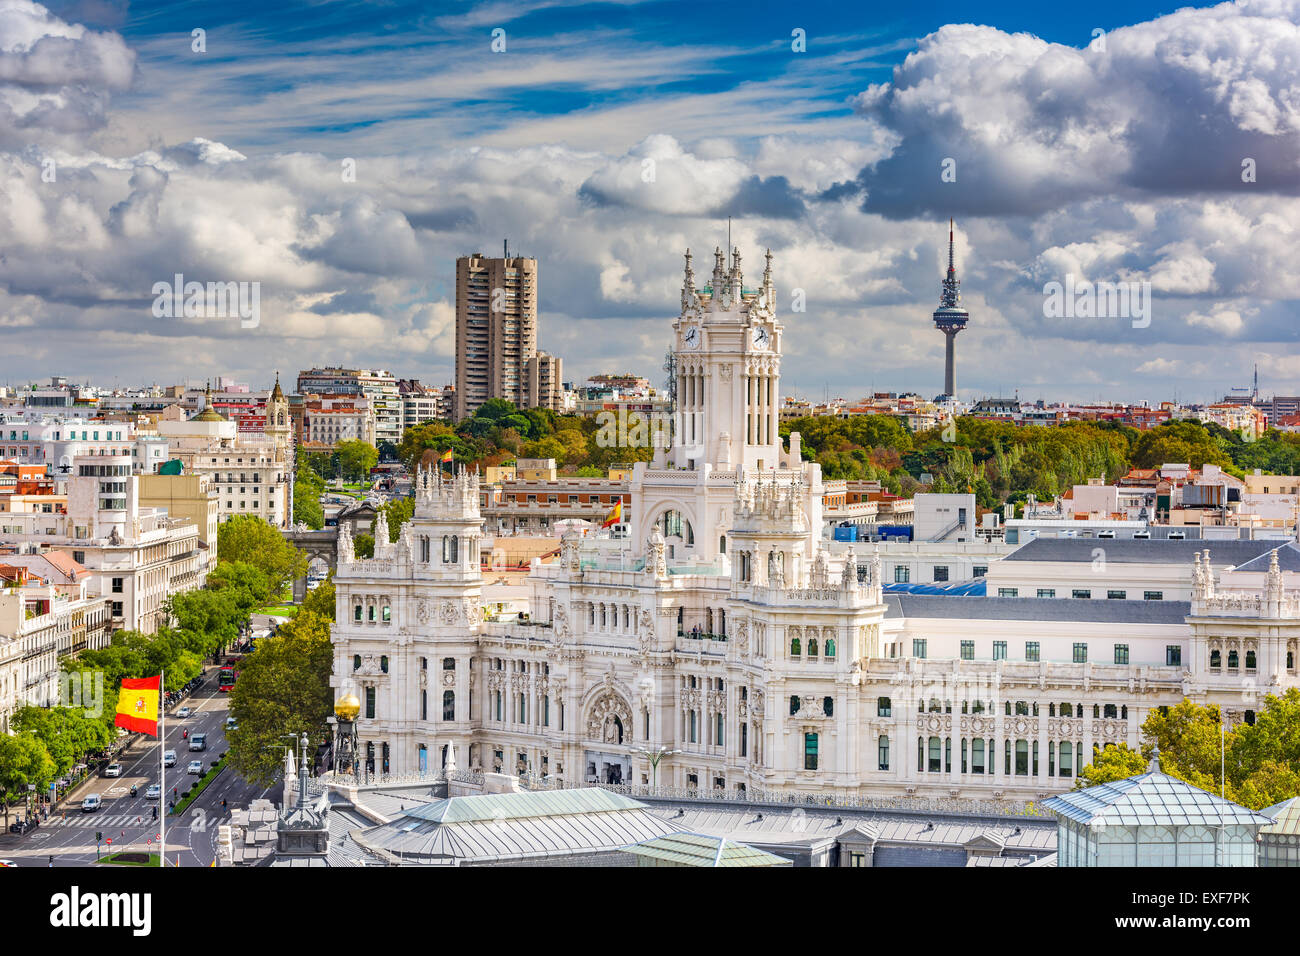 Madrid, Espagne cityscape avec palais et Torrespana Communication Tower. Photo Stock